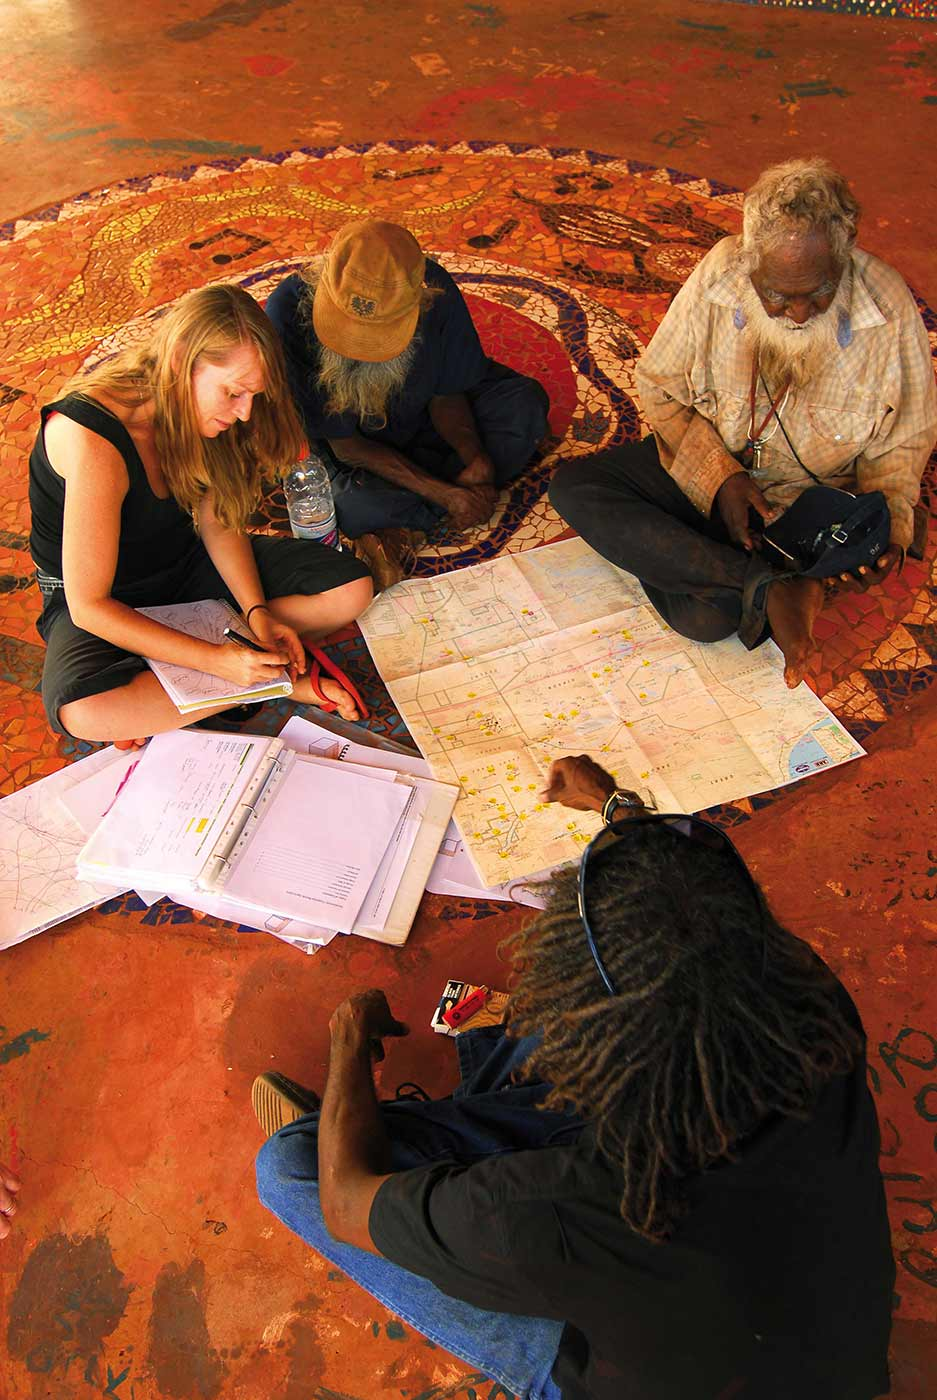 Colour photo of a group of people sitting on the ground in discussion over maps and paperwork.